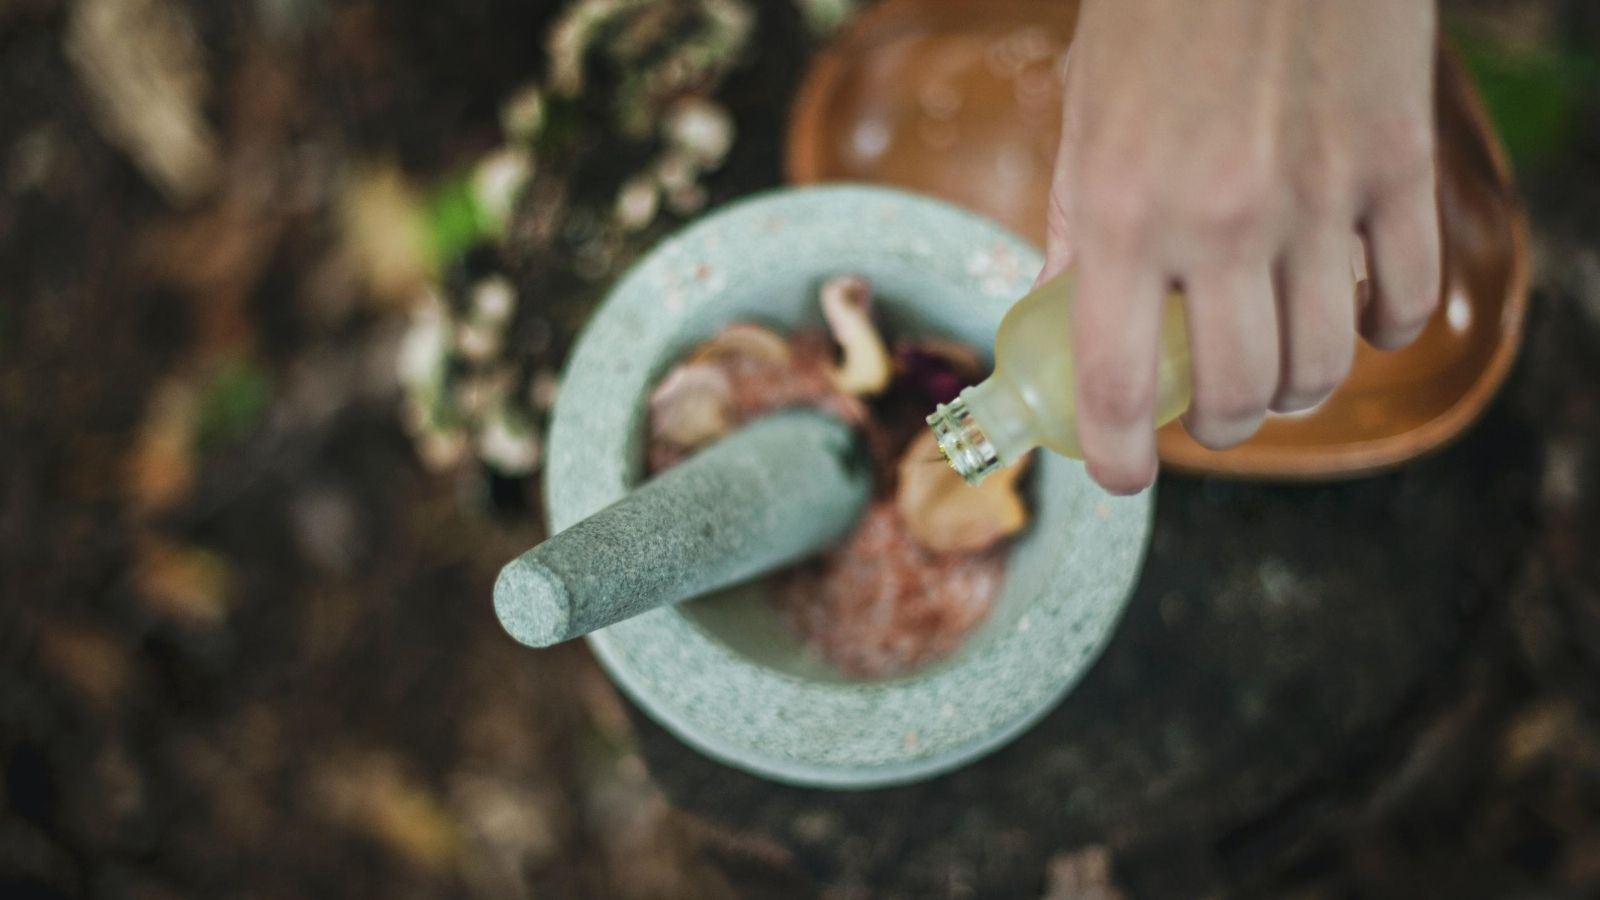 A mortar and pestle containing herbs for preparation